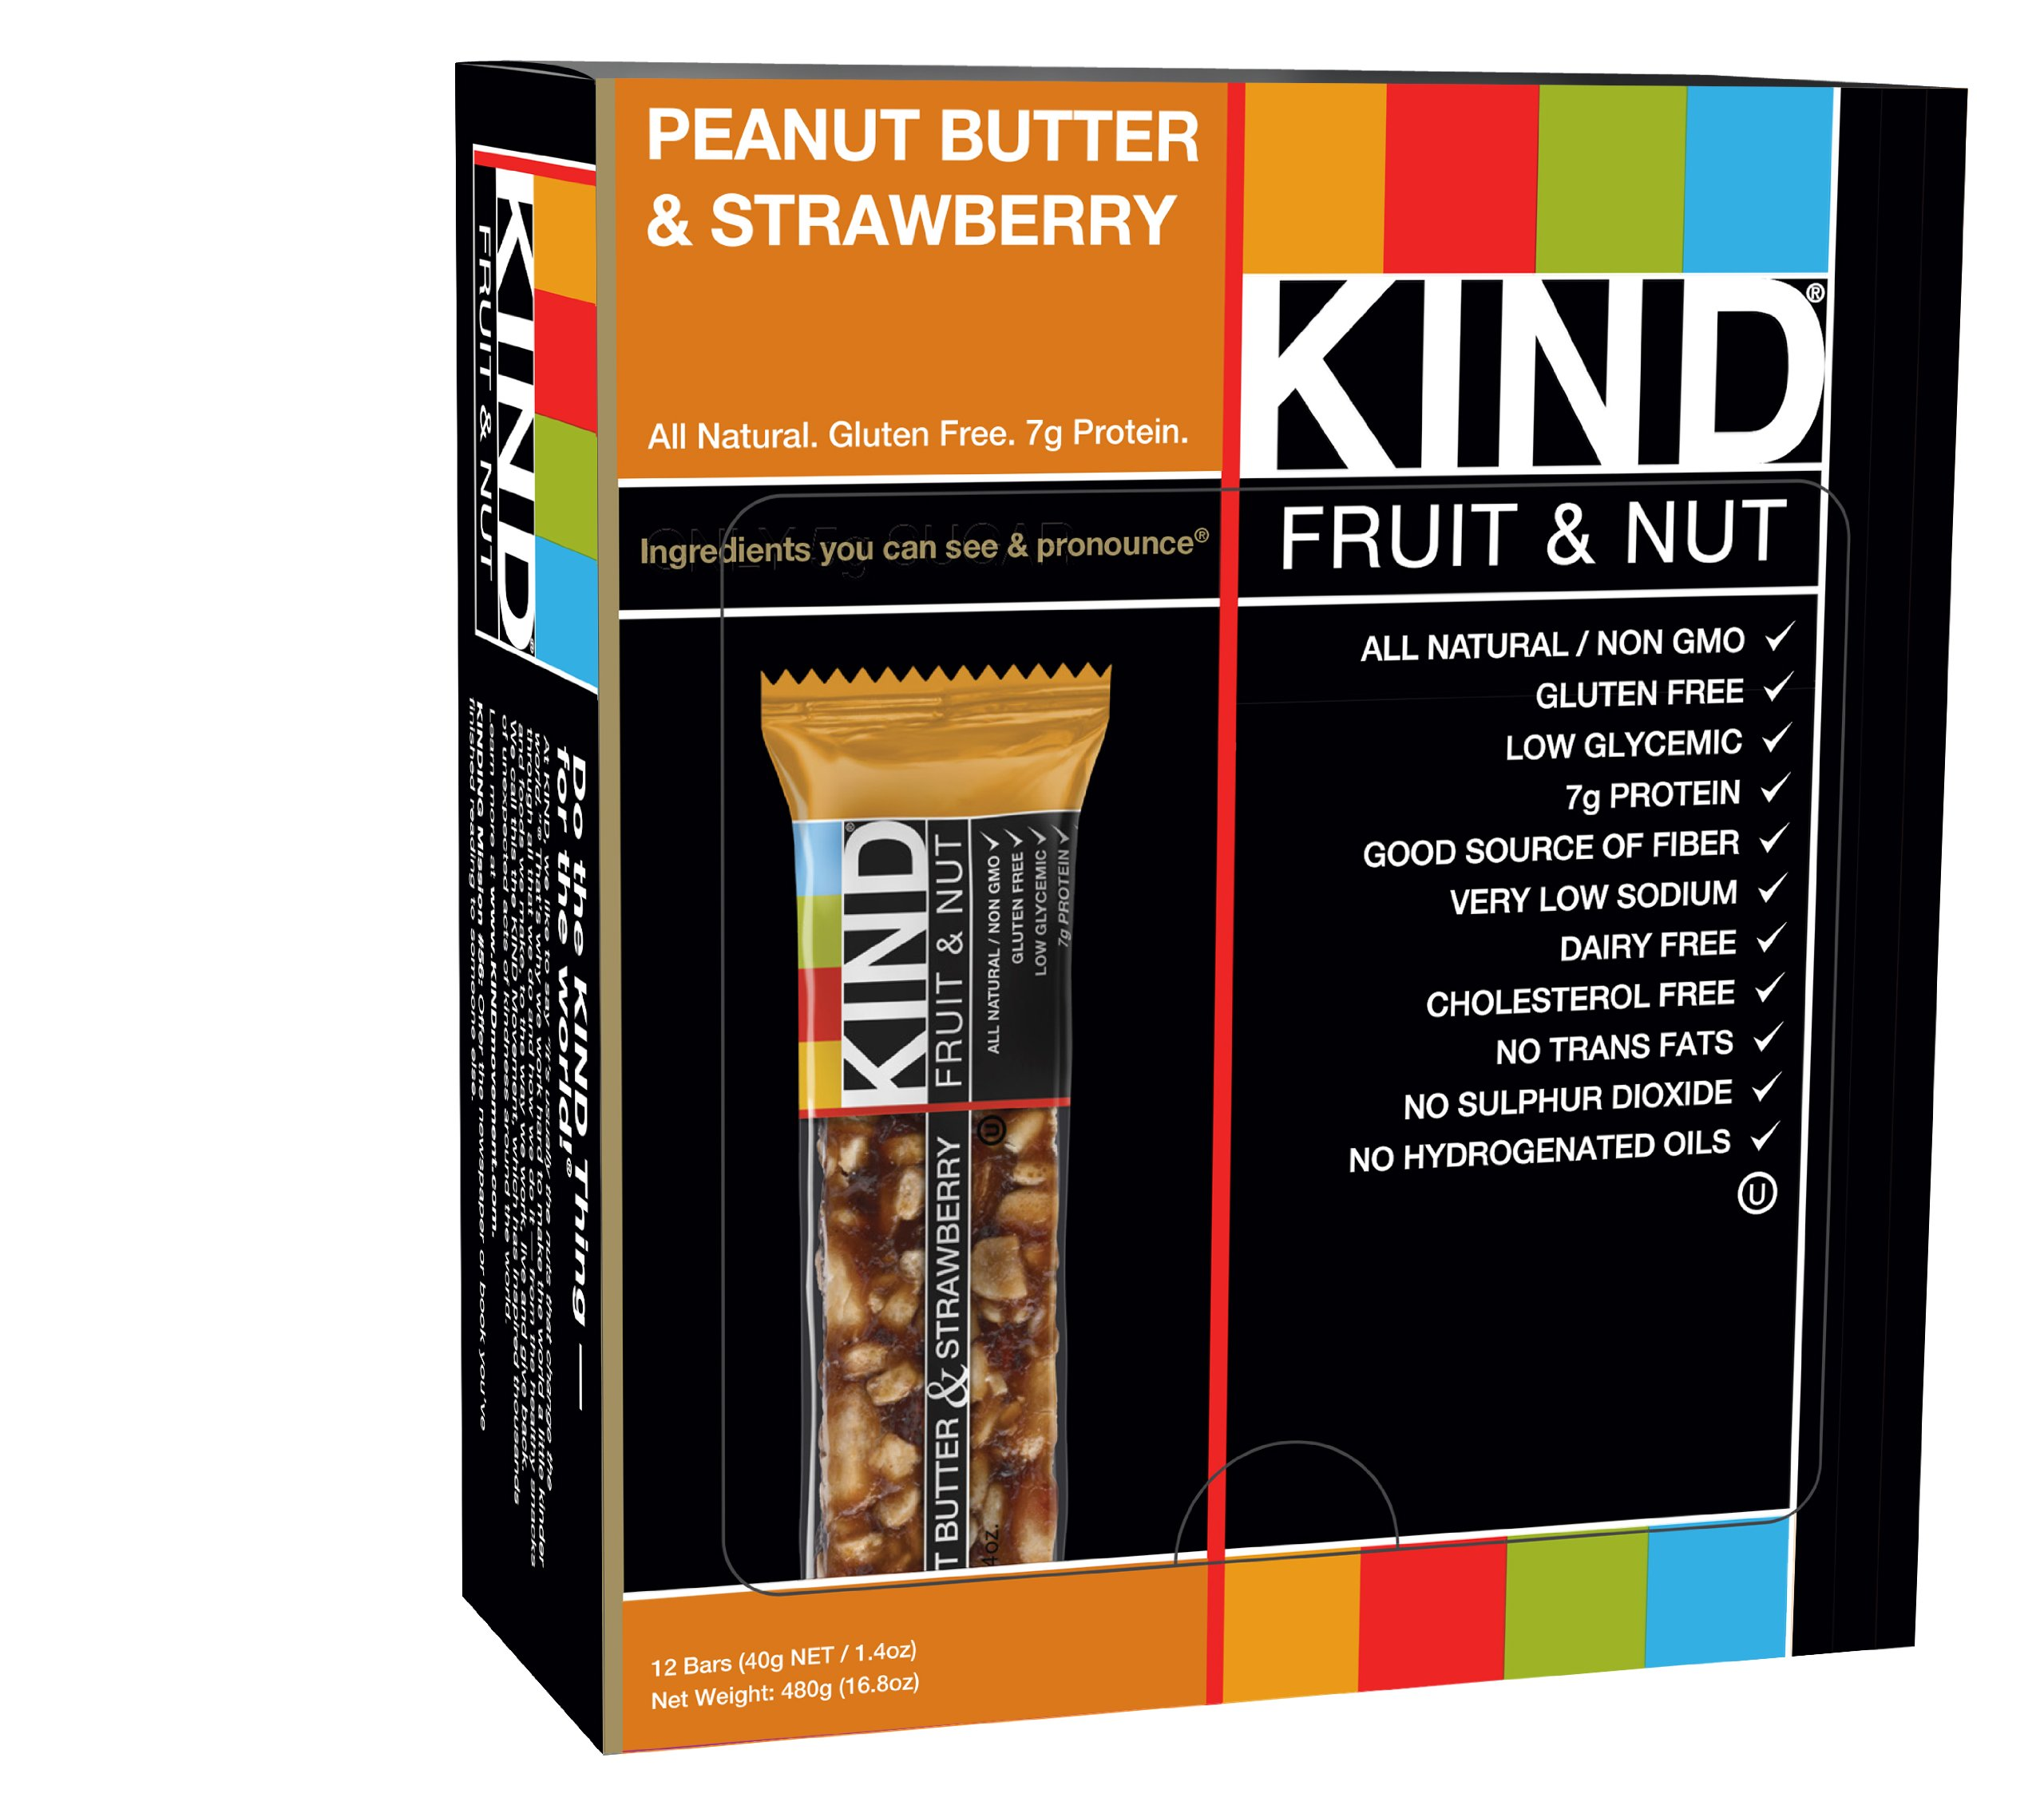 Kind Bars Peanut Butter & Strawberry Gluten Free 1.4 Ounce Bars 12 Count 20